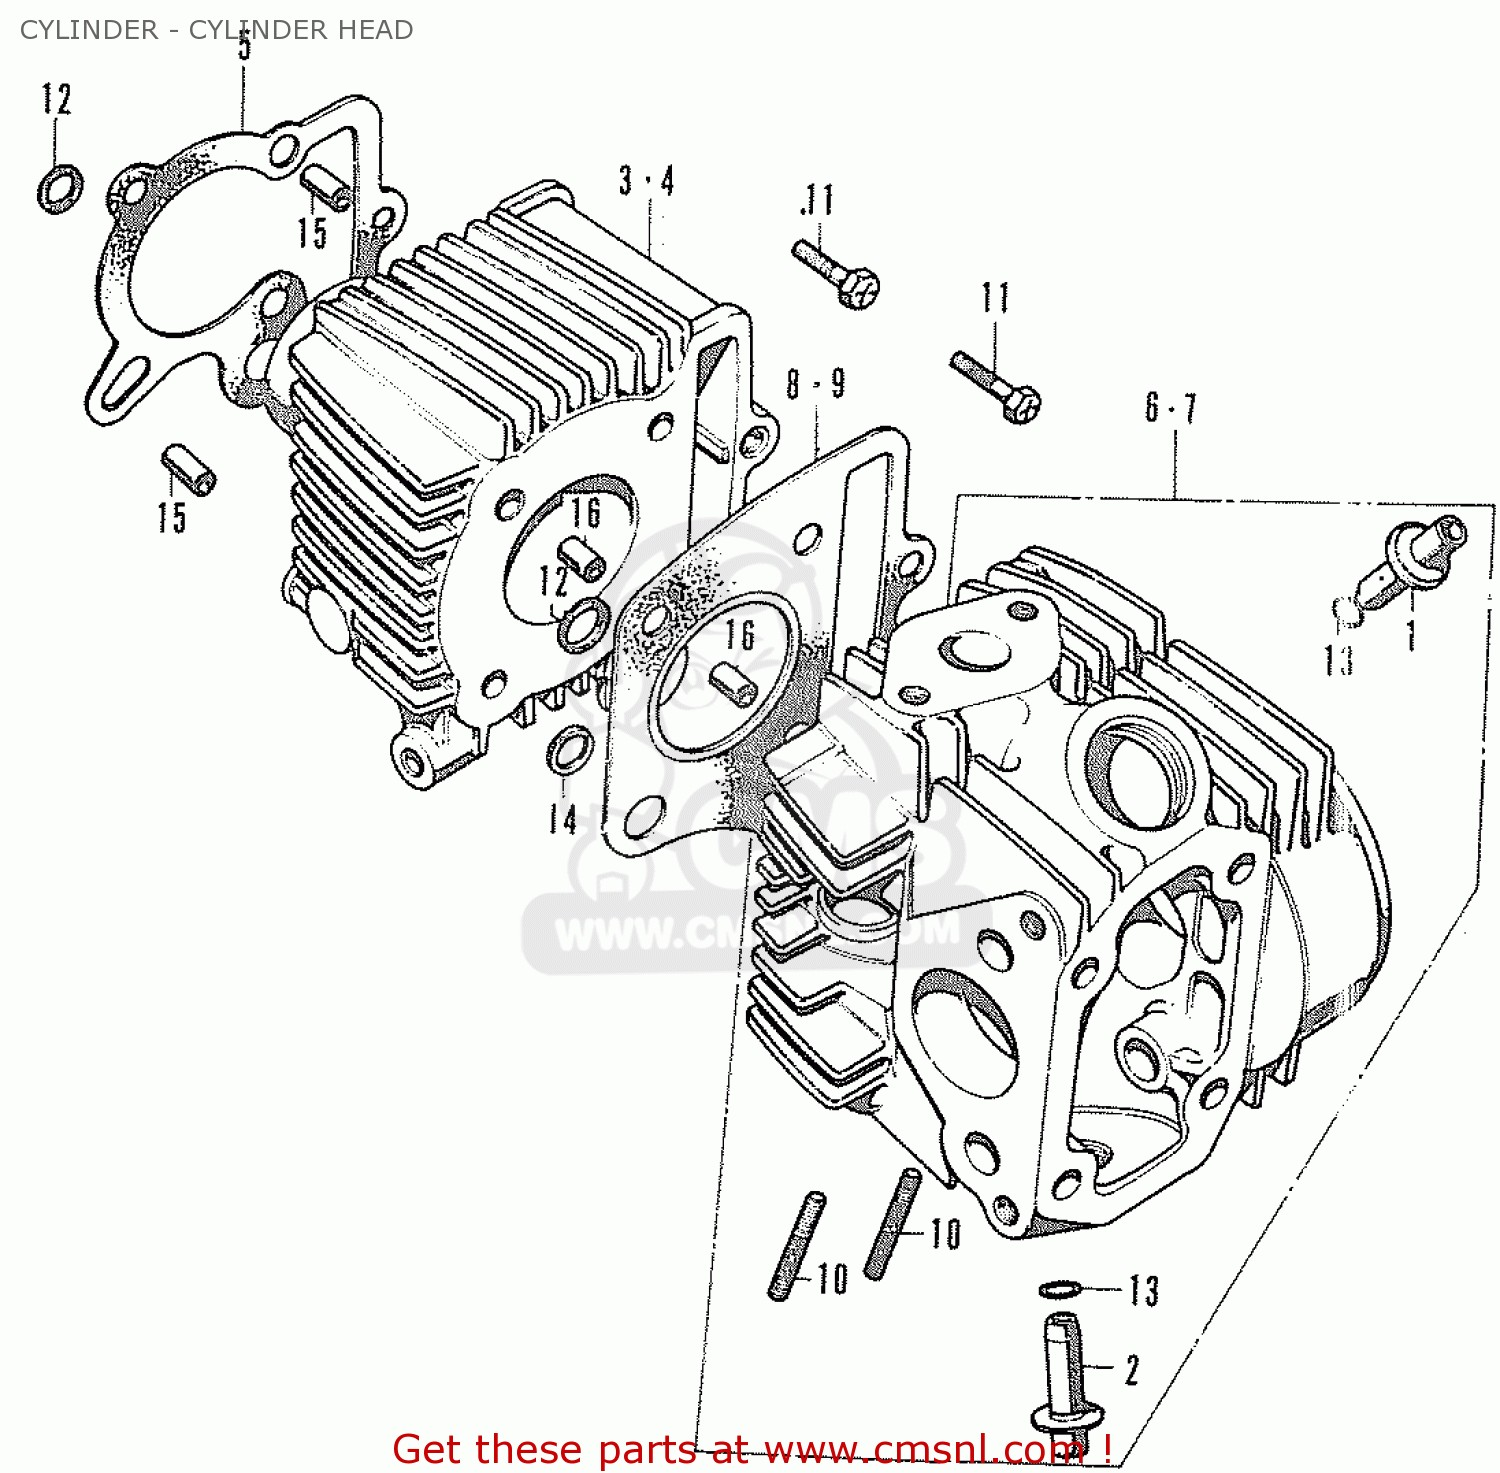 Honda Cd70 Engine Diagram Motorcycle Cd70 Engine Diagram